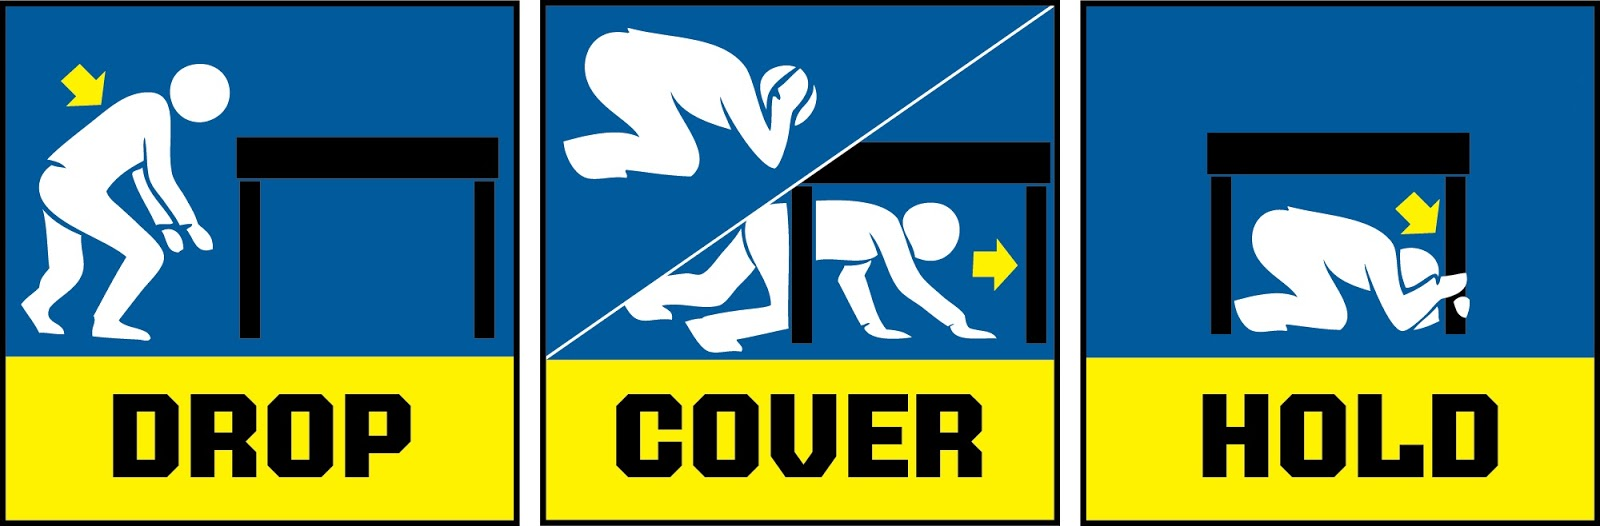 Earthquake Safety Clipart